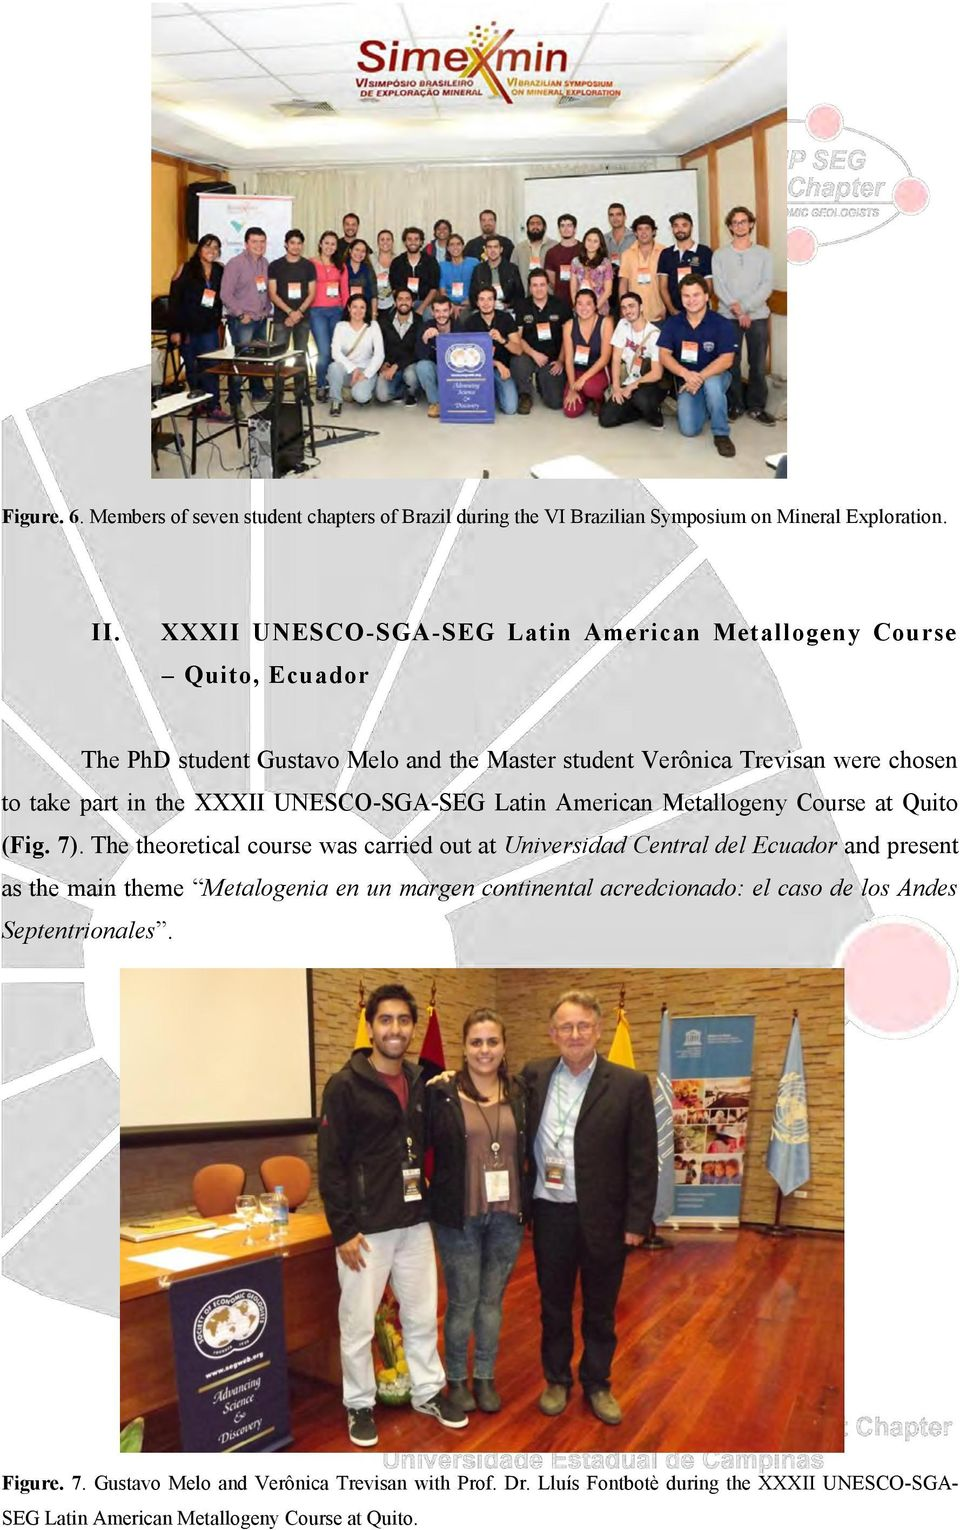 XXXII UNESCO-SGA-SEG Latin American Metallogeny Course at Quito (Fig. 7).